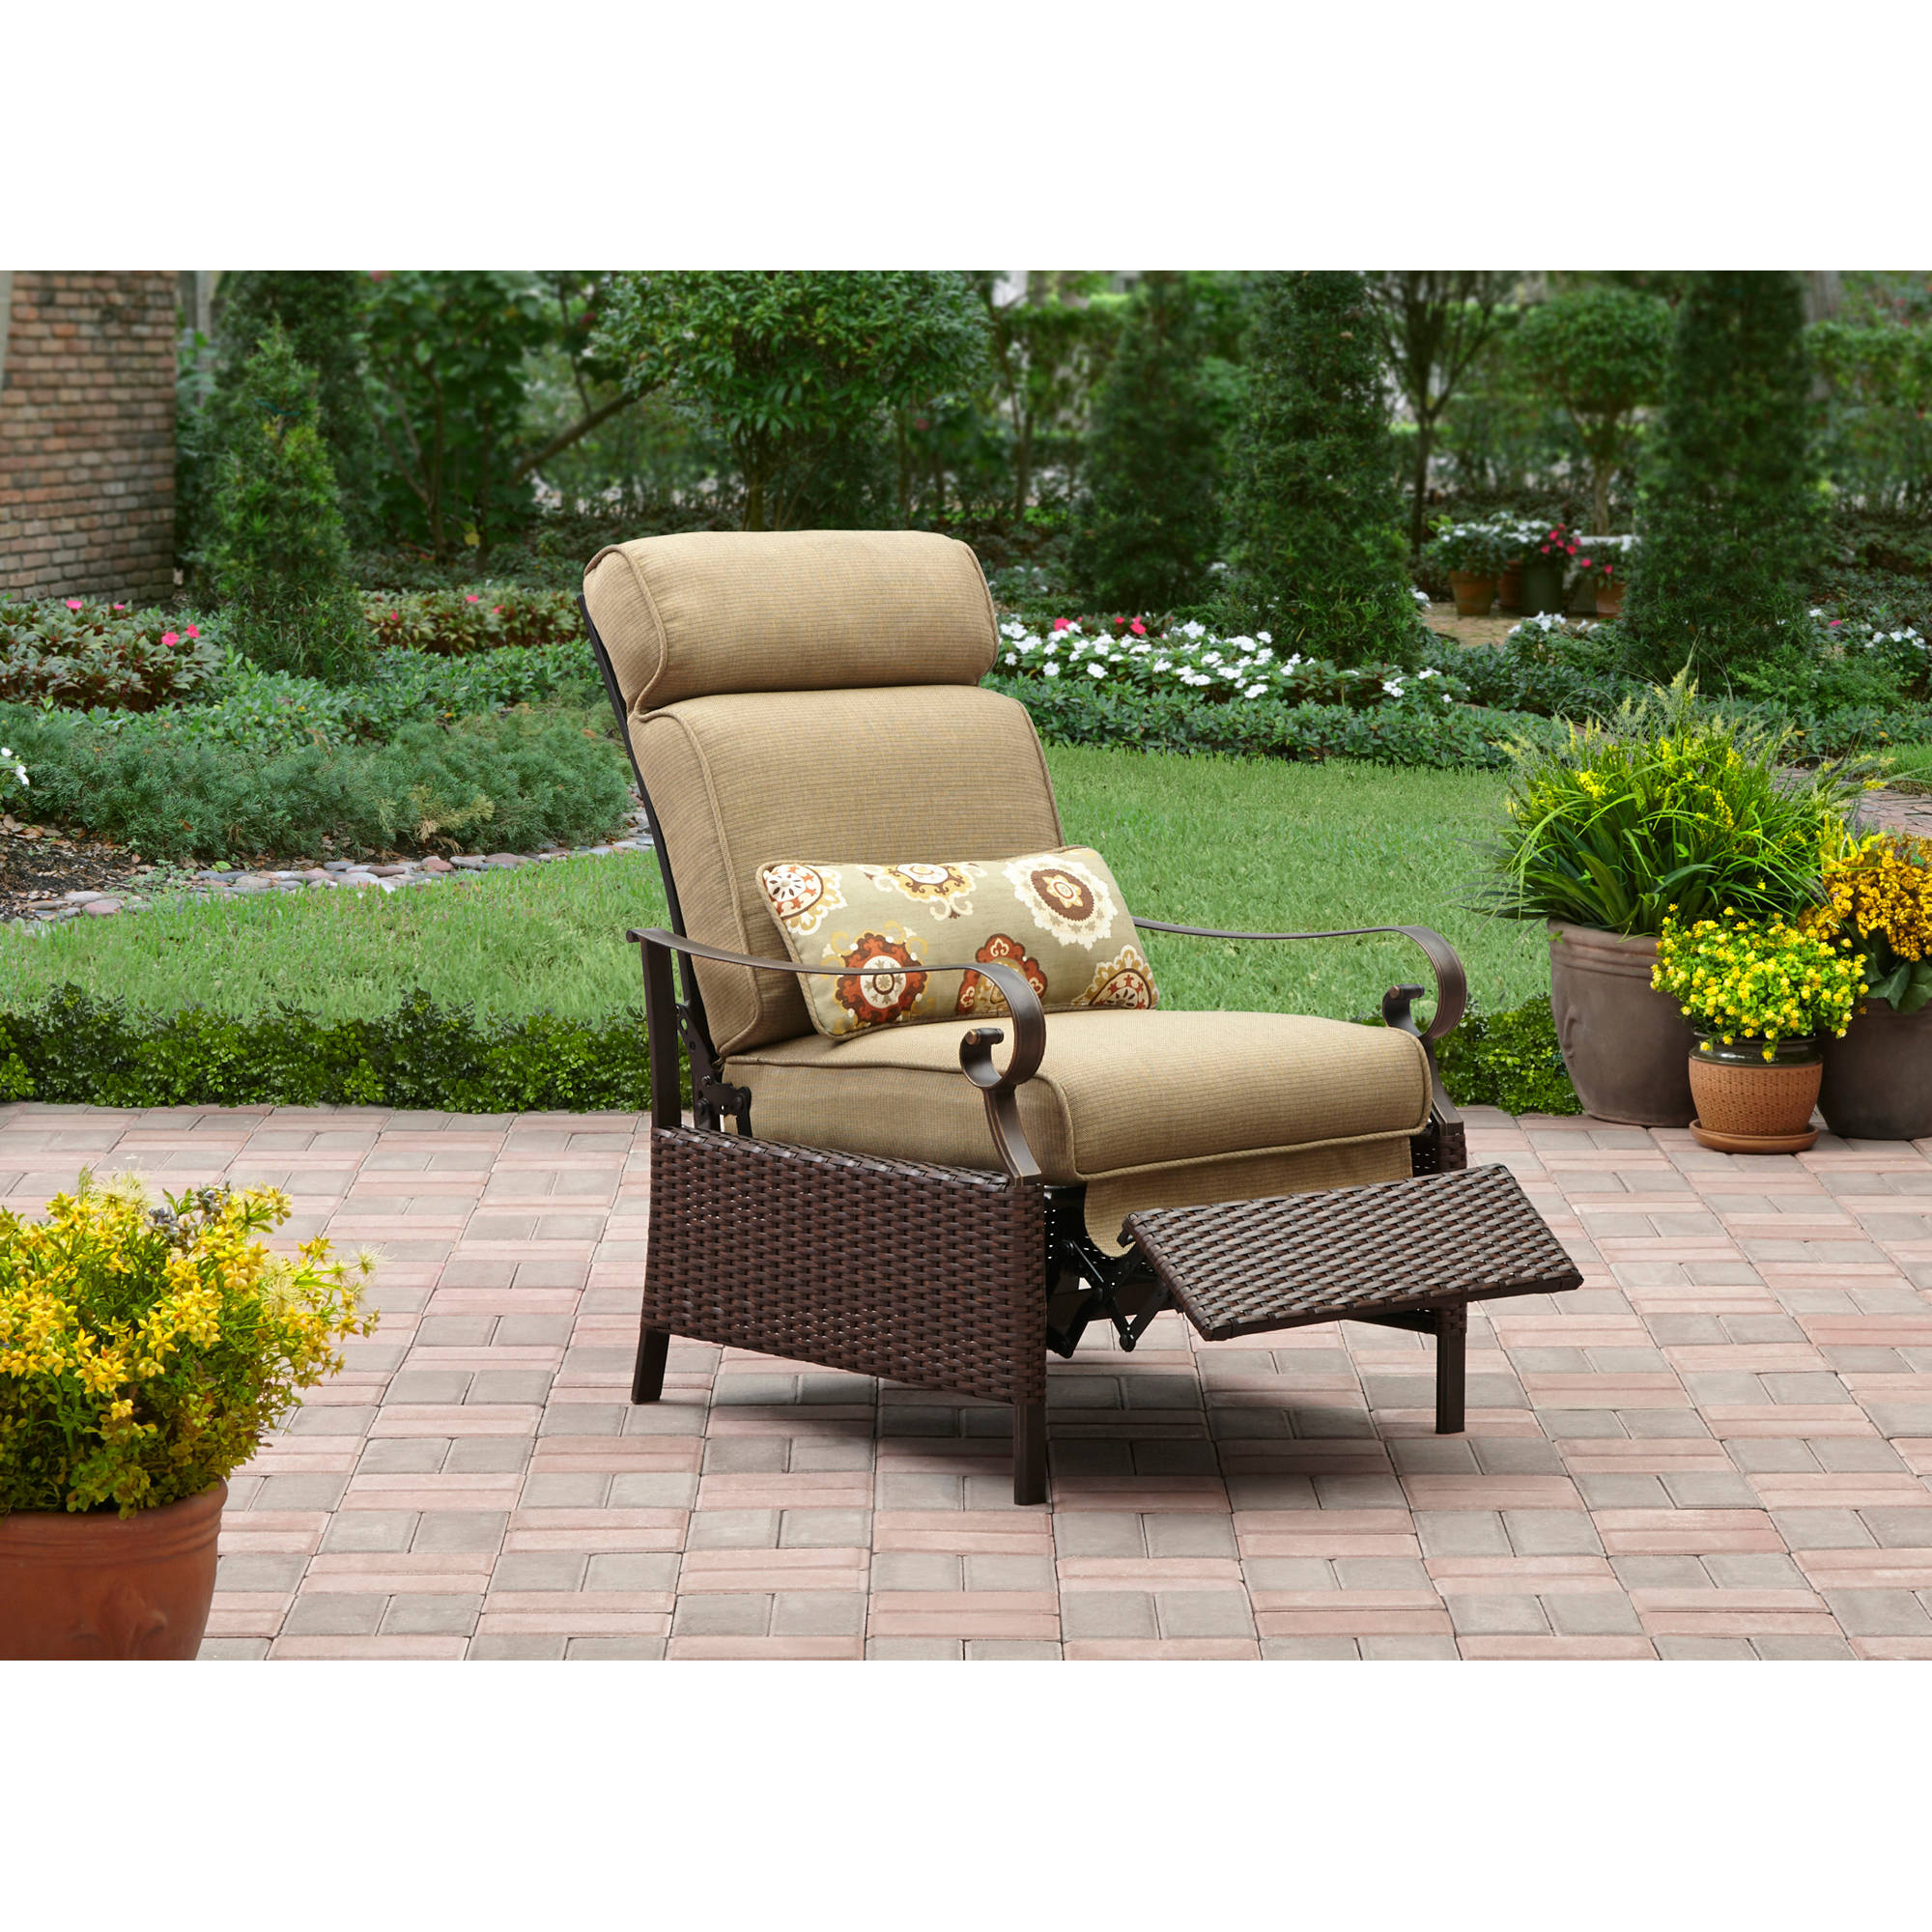 Amazing Better Homes And Gardens Riverwood Recliner, Tan